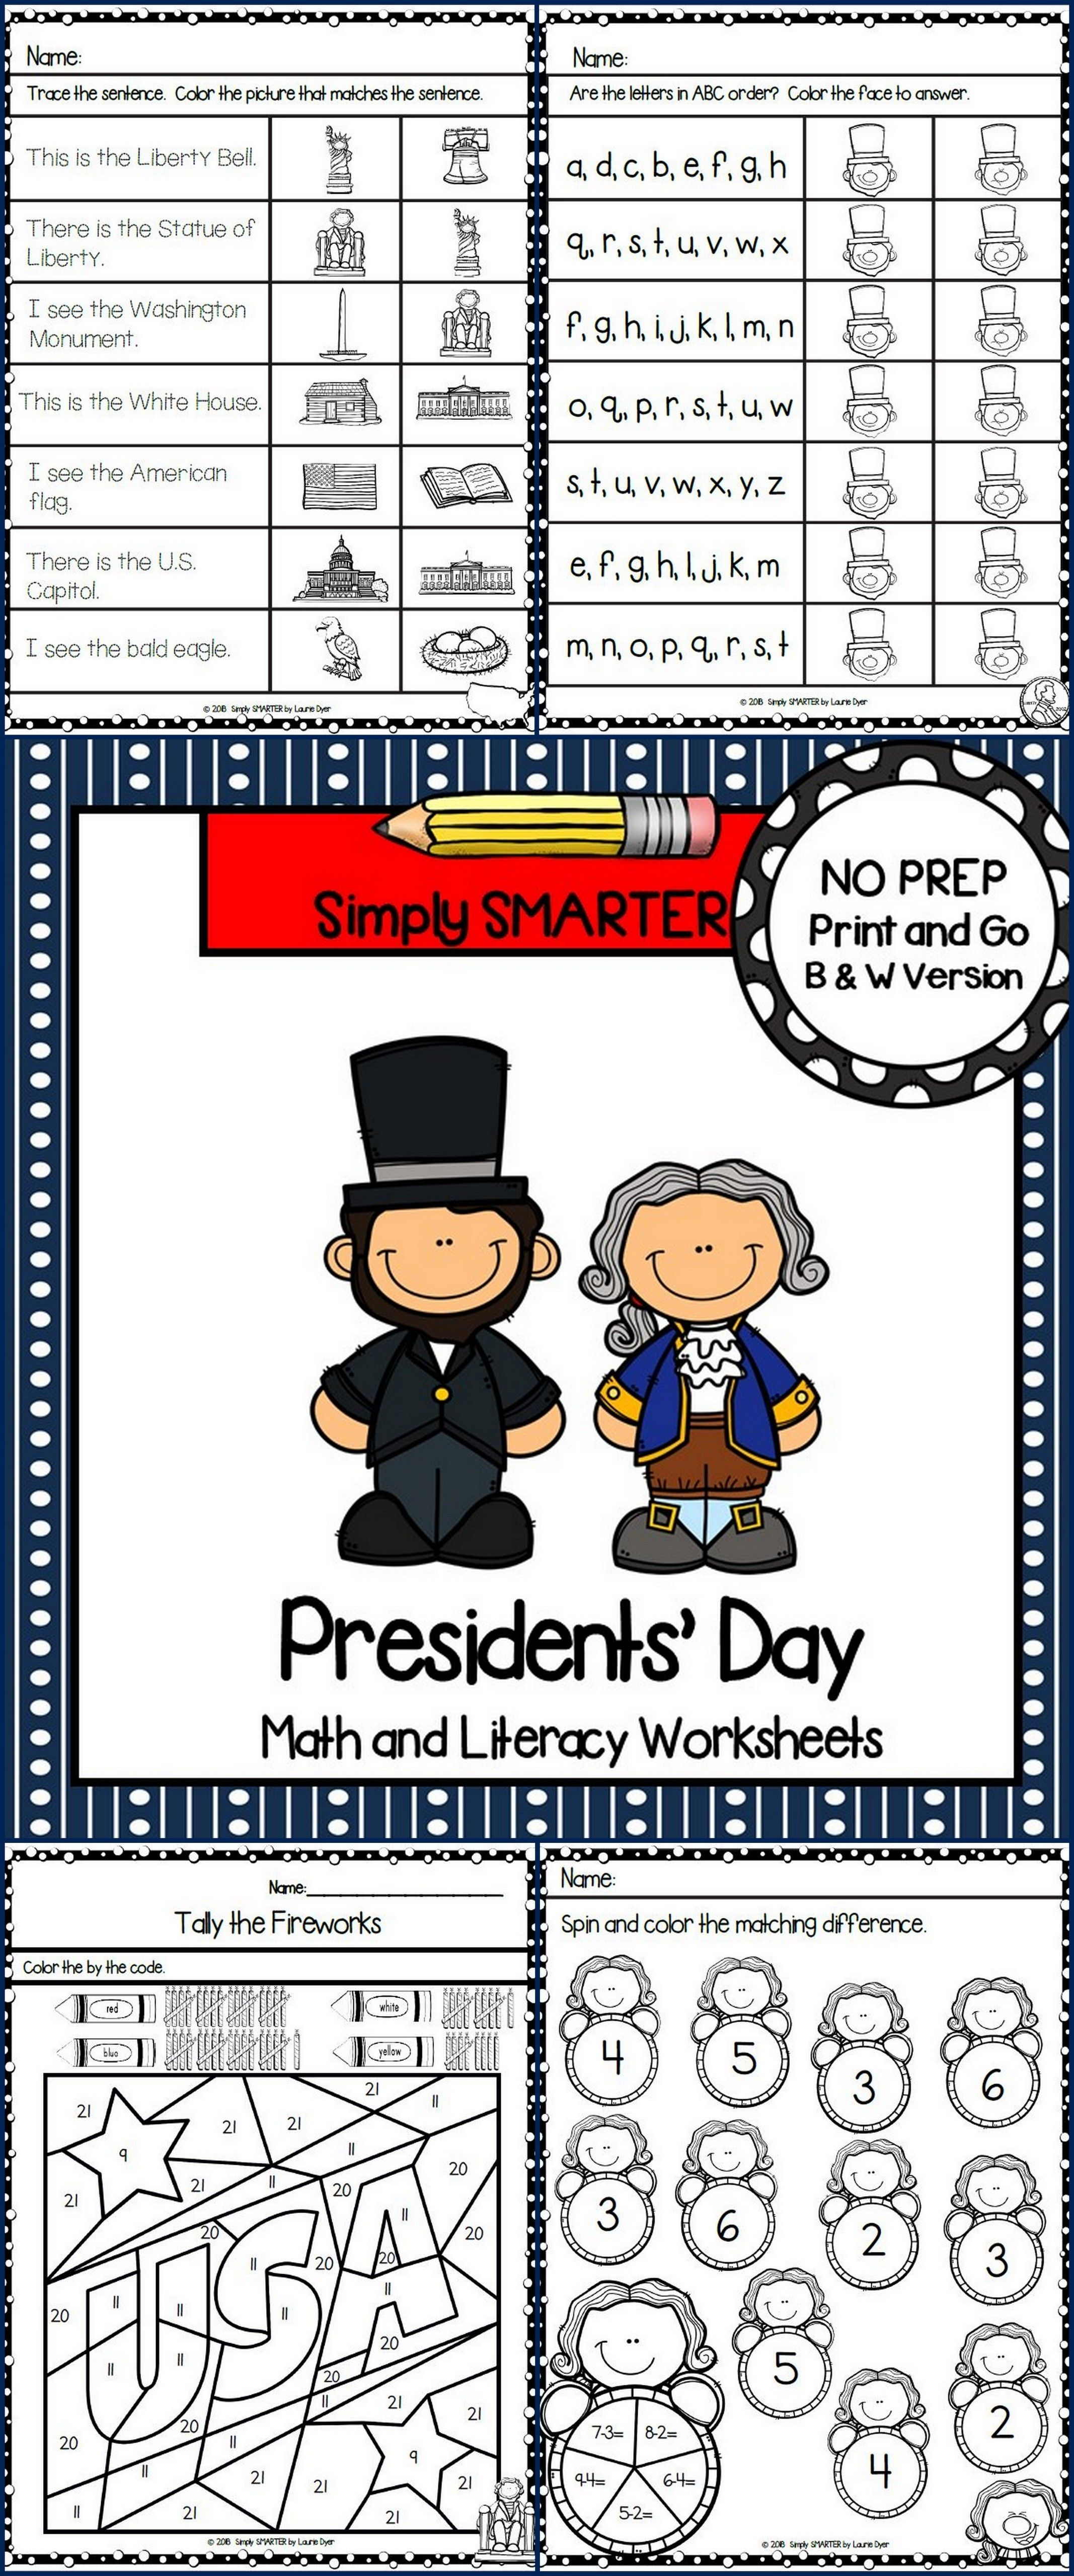 Presidents' Day Themed Kindergarten Math And Literacy